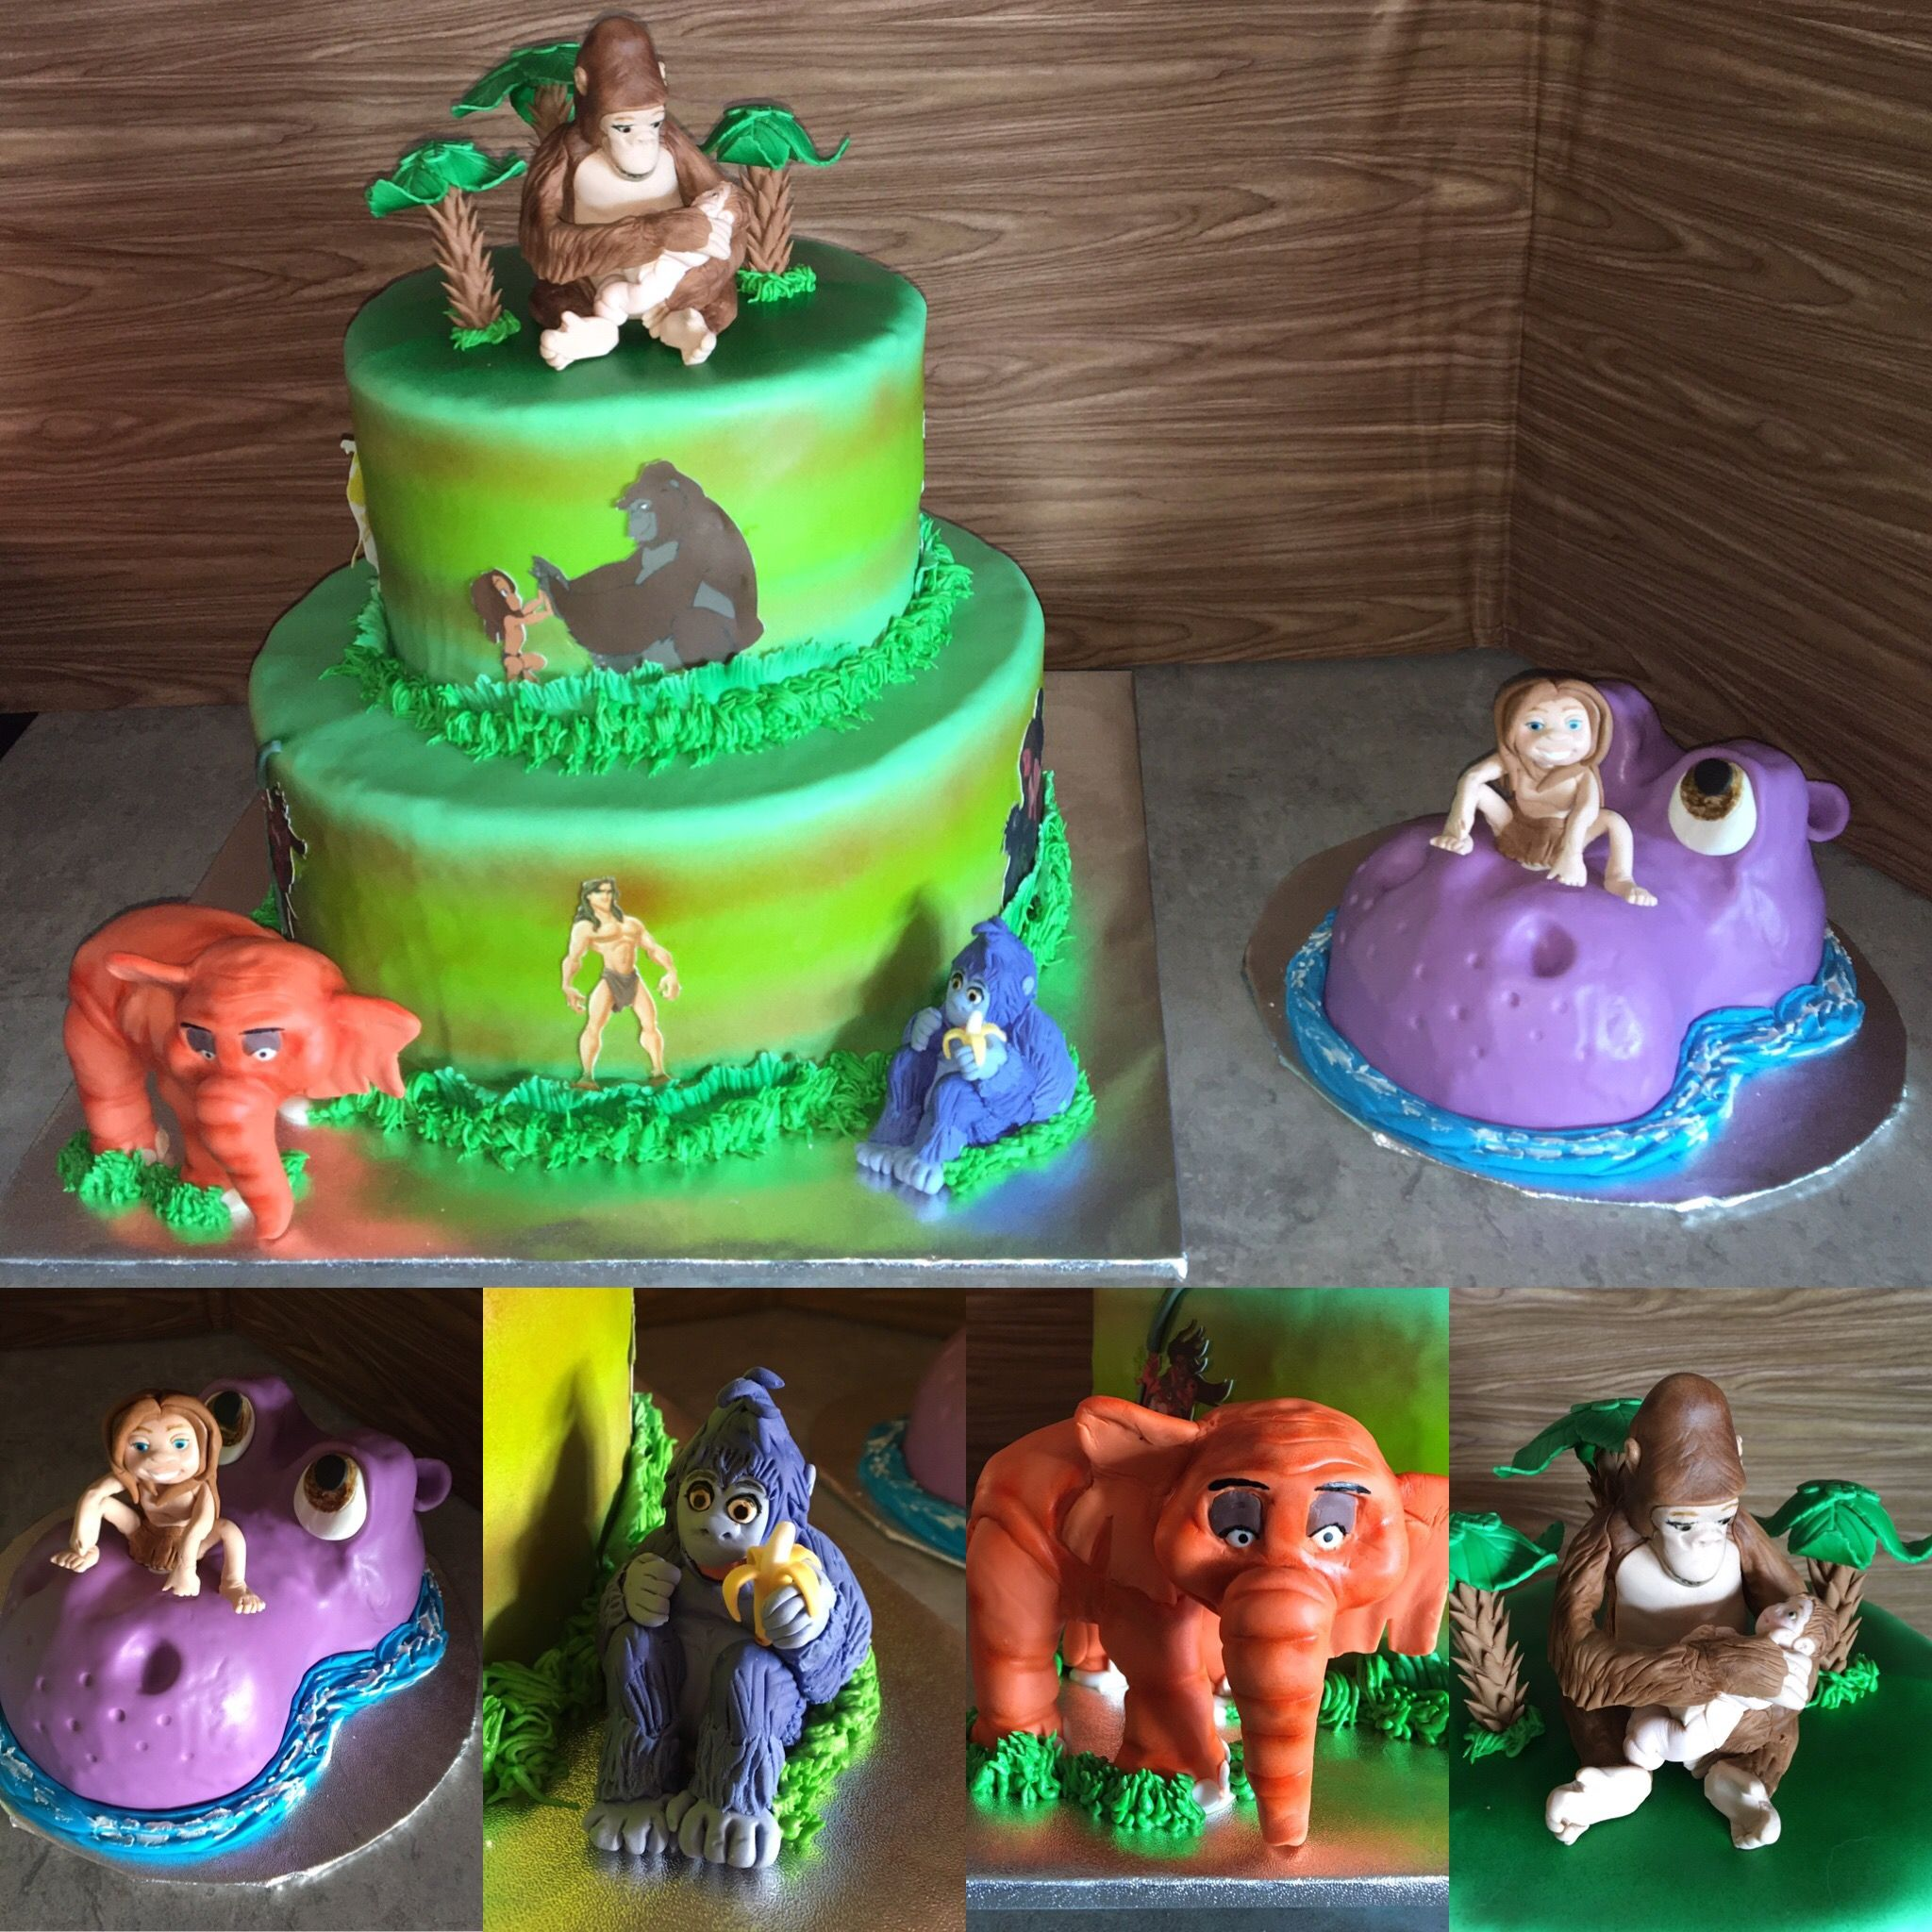 Disney Tarzan Cake With Smasher Cake All Figures Are Made